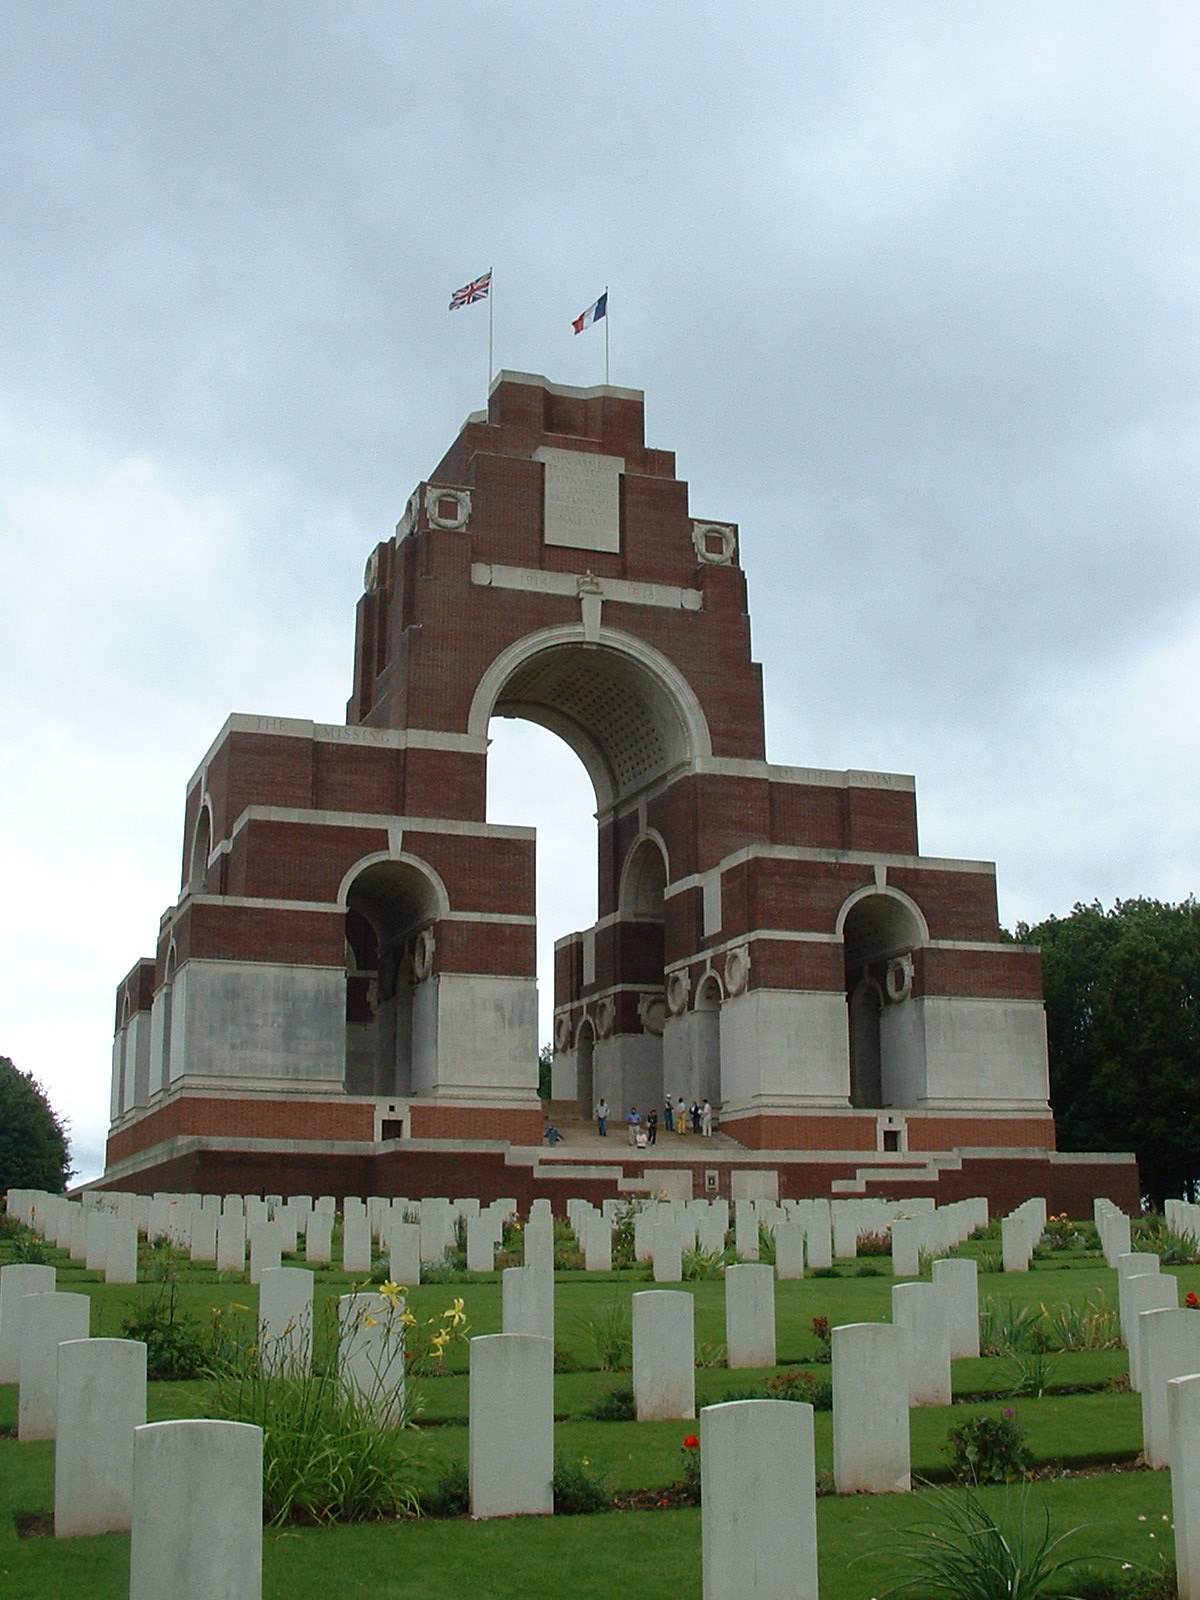 thiepval_memorial_to_the_missing